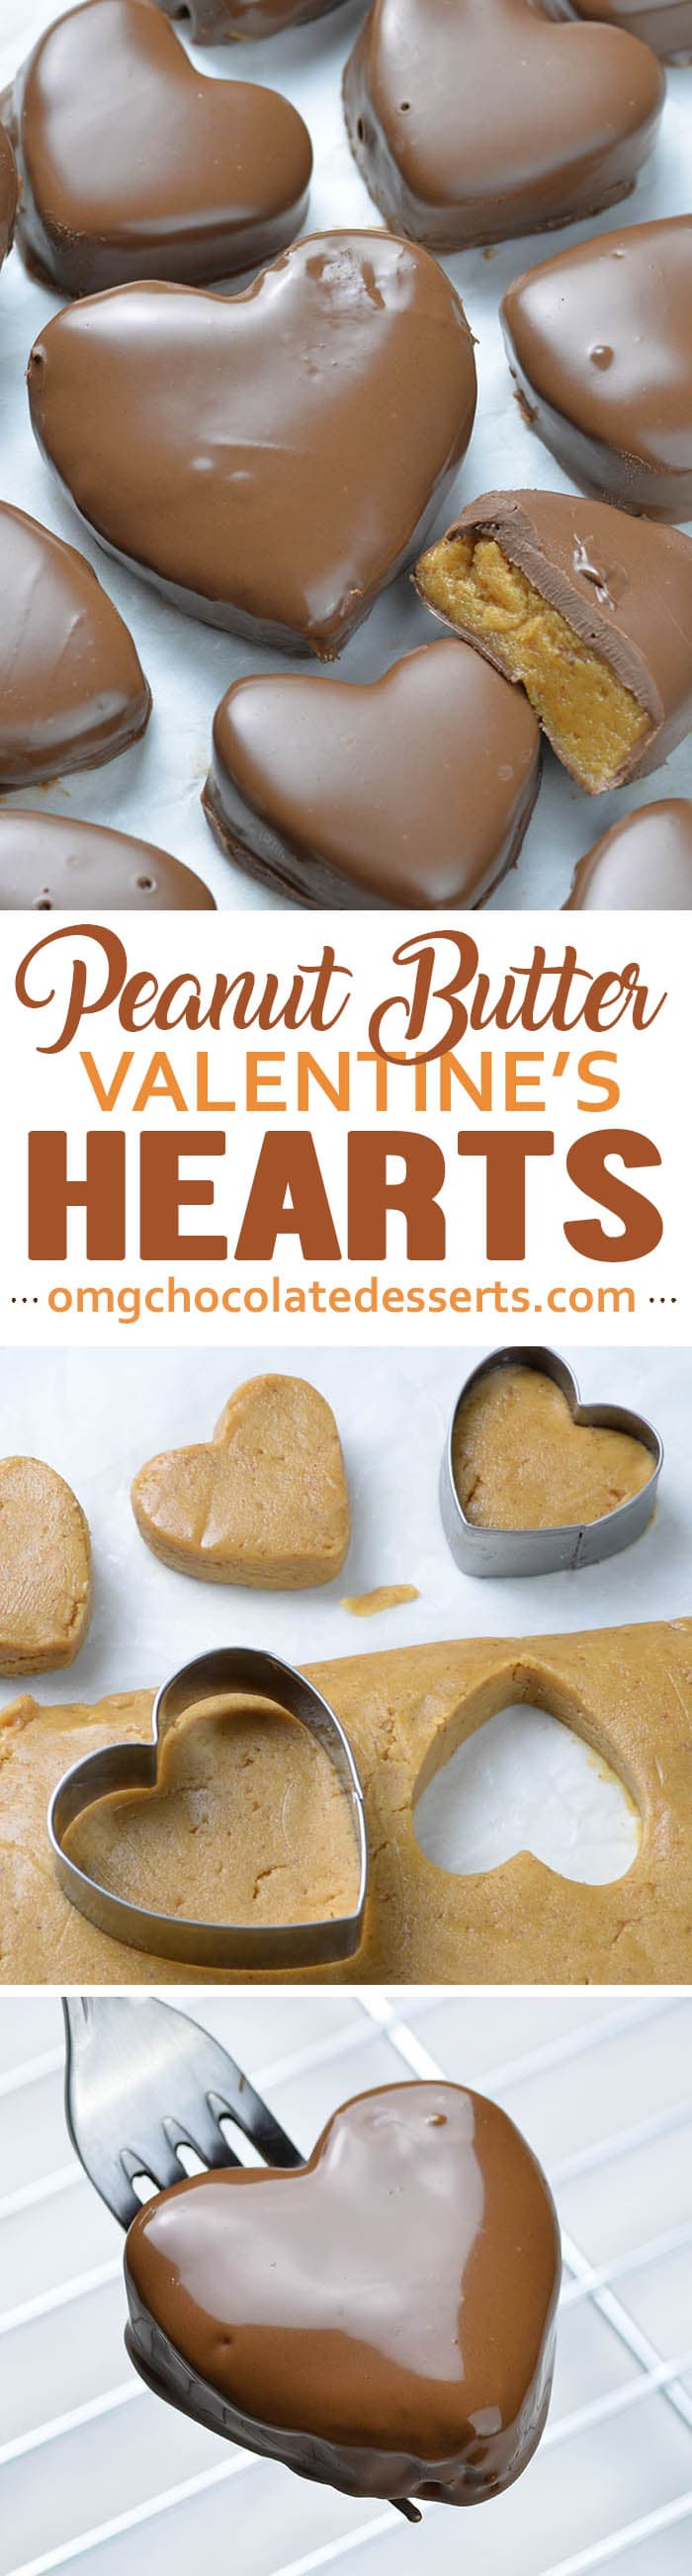 Peanut Butter Valentines Hearts - An all time classic favorite, chocolate covered peanut butter treat in a heart shape. Great for gift giving, office treats and school exchanges.